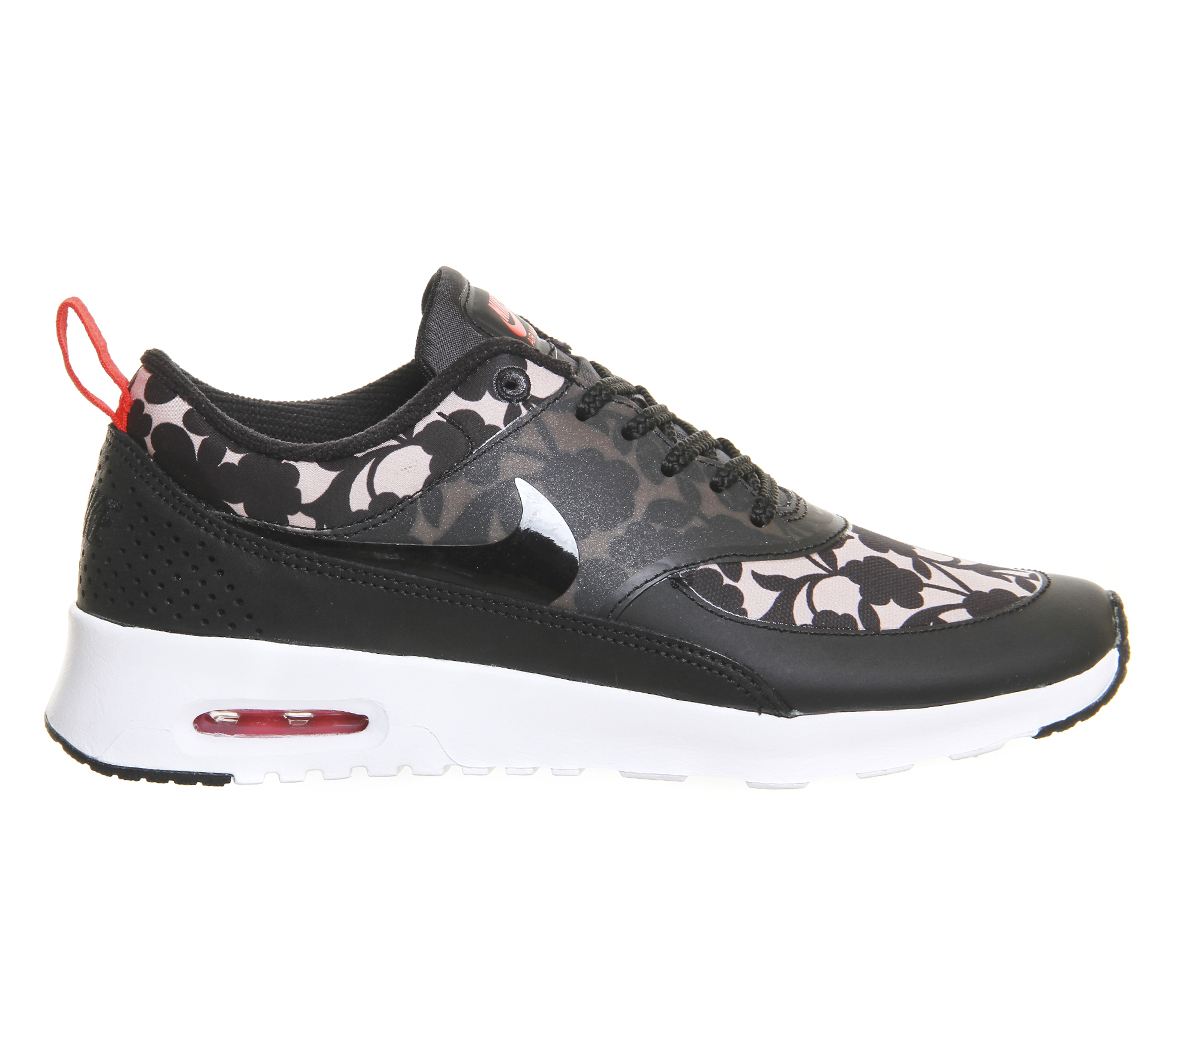 Lyst Nike Air Max Thea Floral Print Low Top Sneakers In Brown